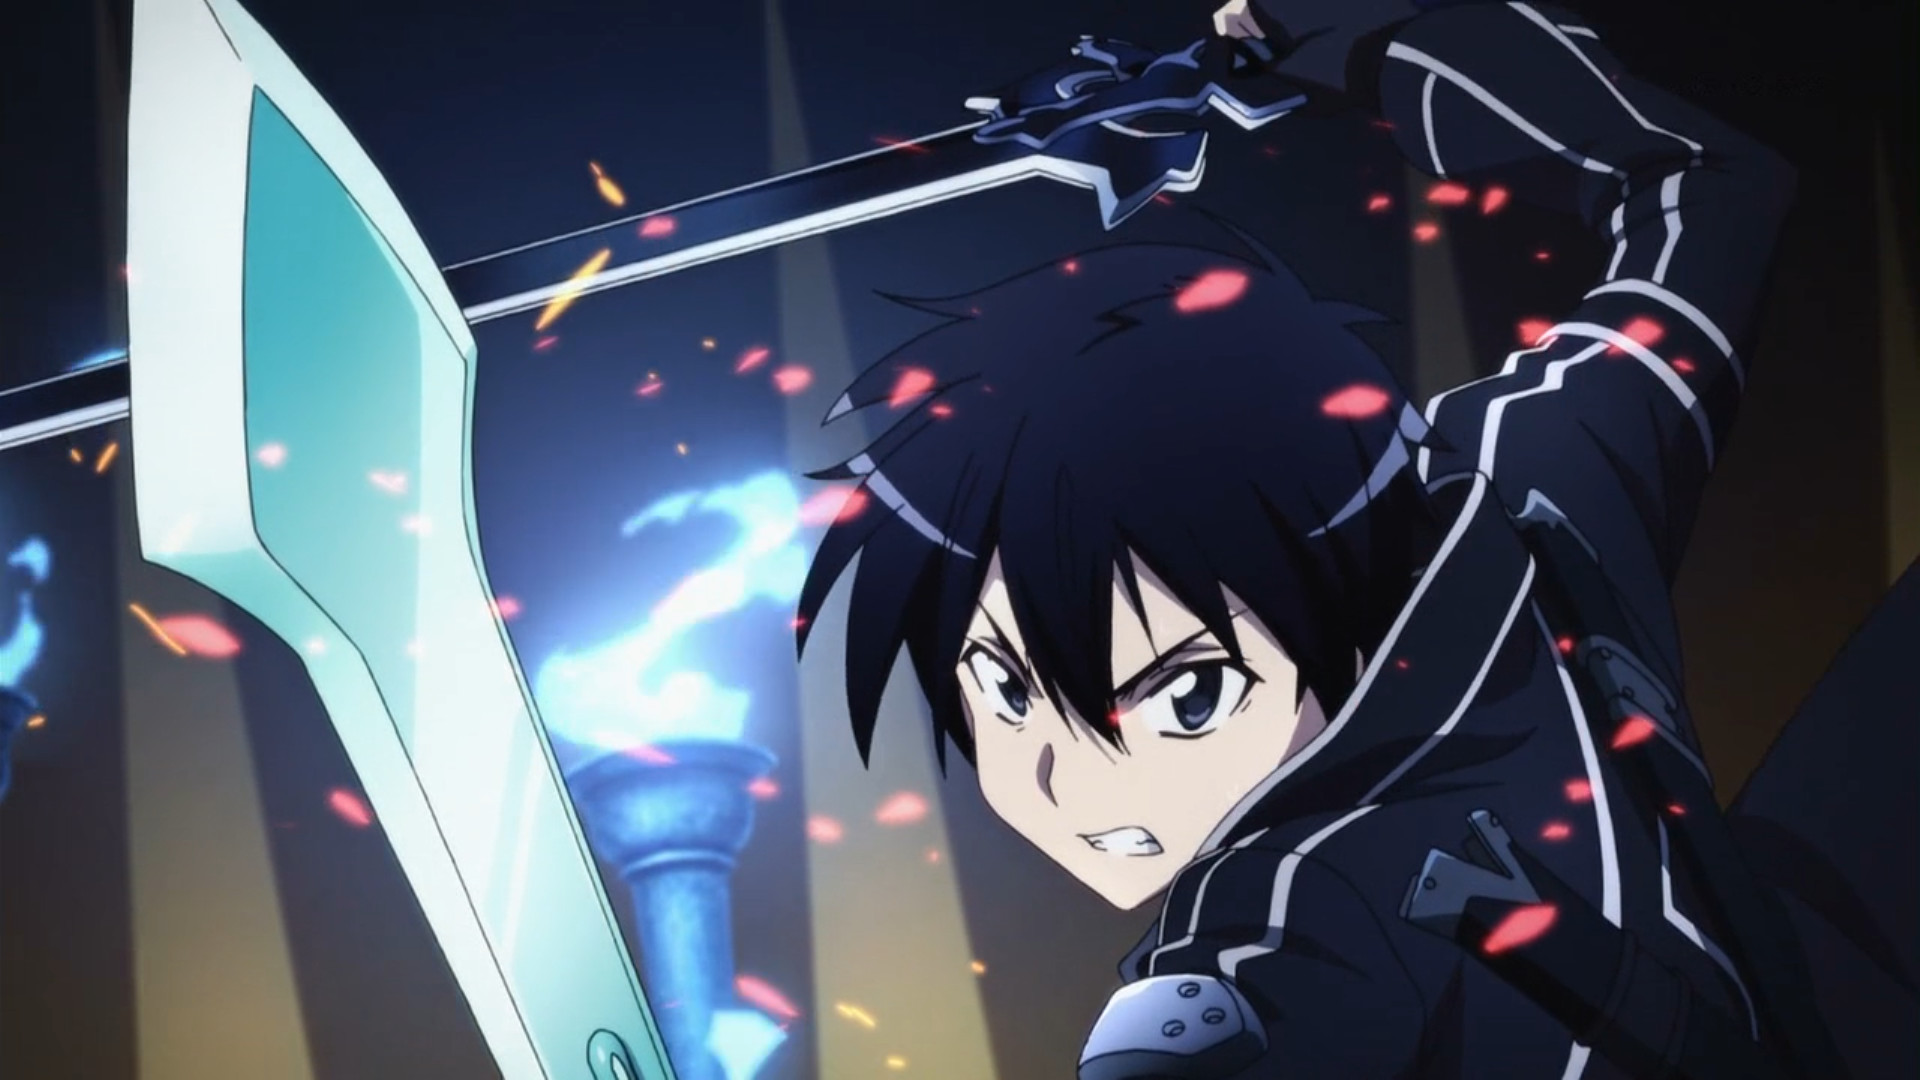 Sword Art Online Episode 9